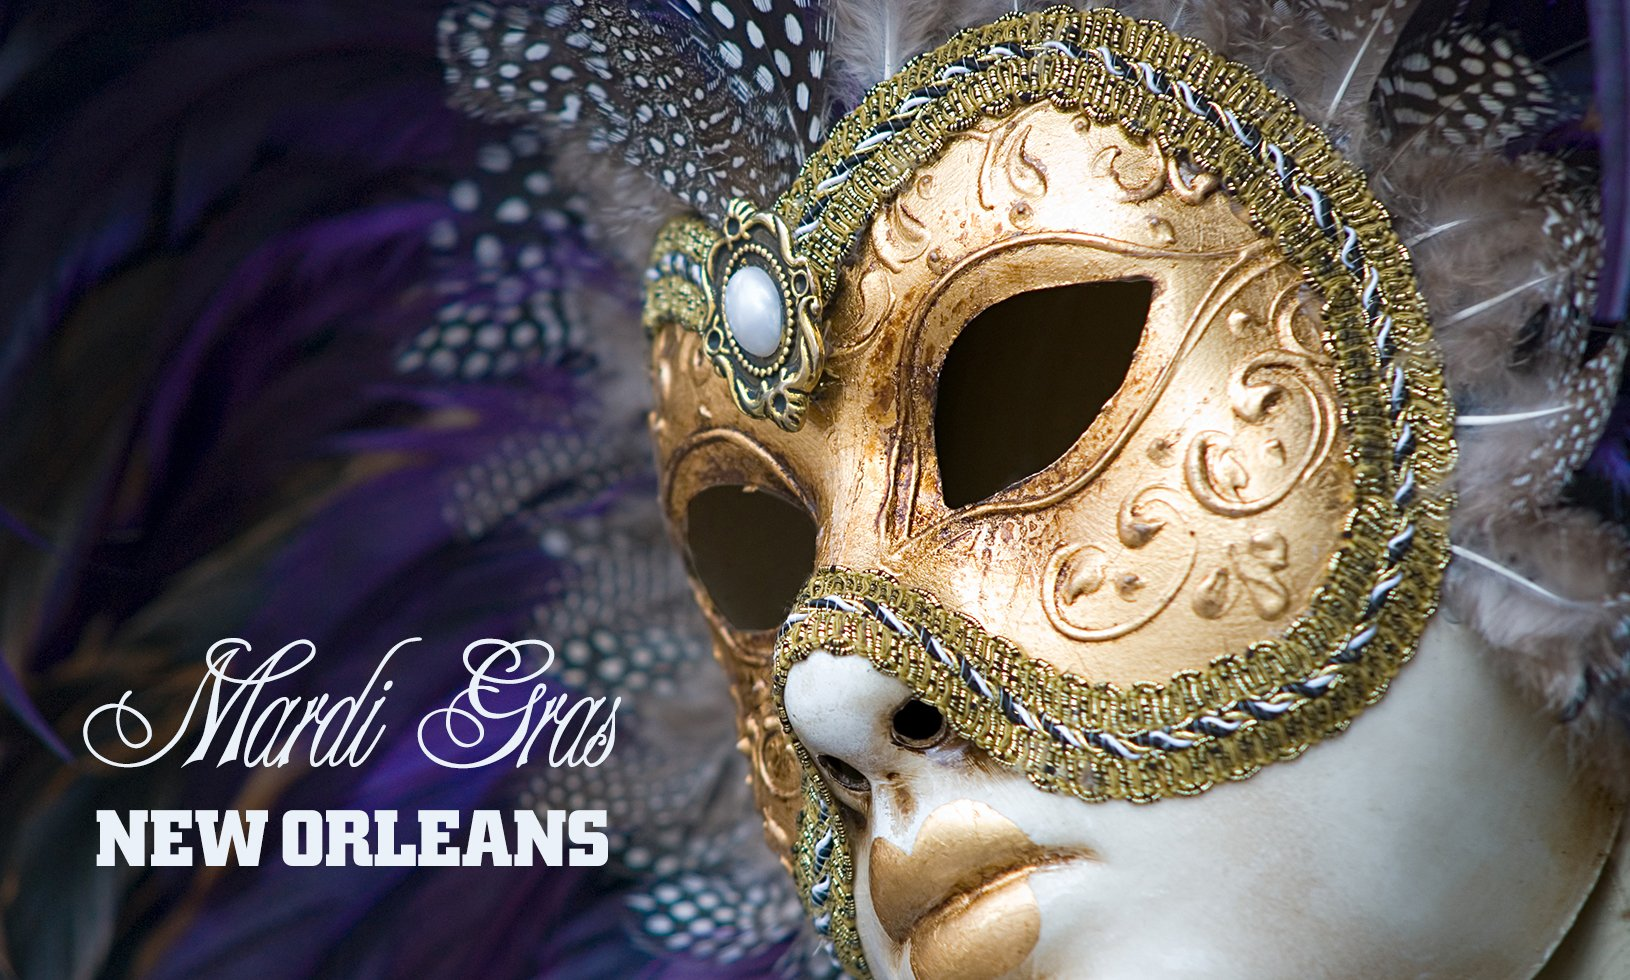 Mardi Gras New Orleans HD Wallpapers Funny Current Events 2014 View 1630x980